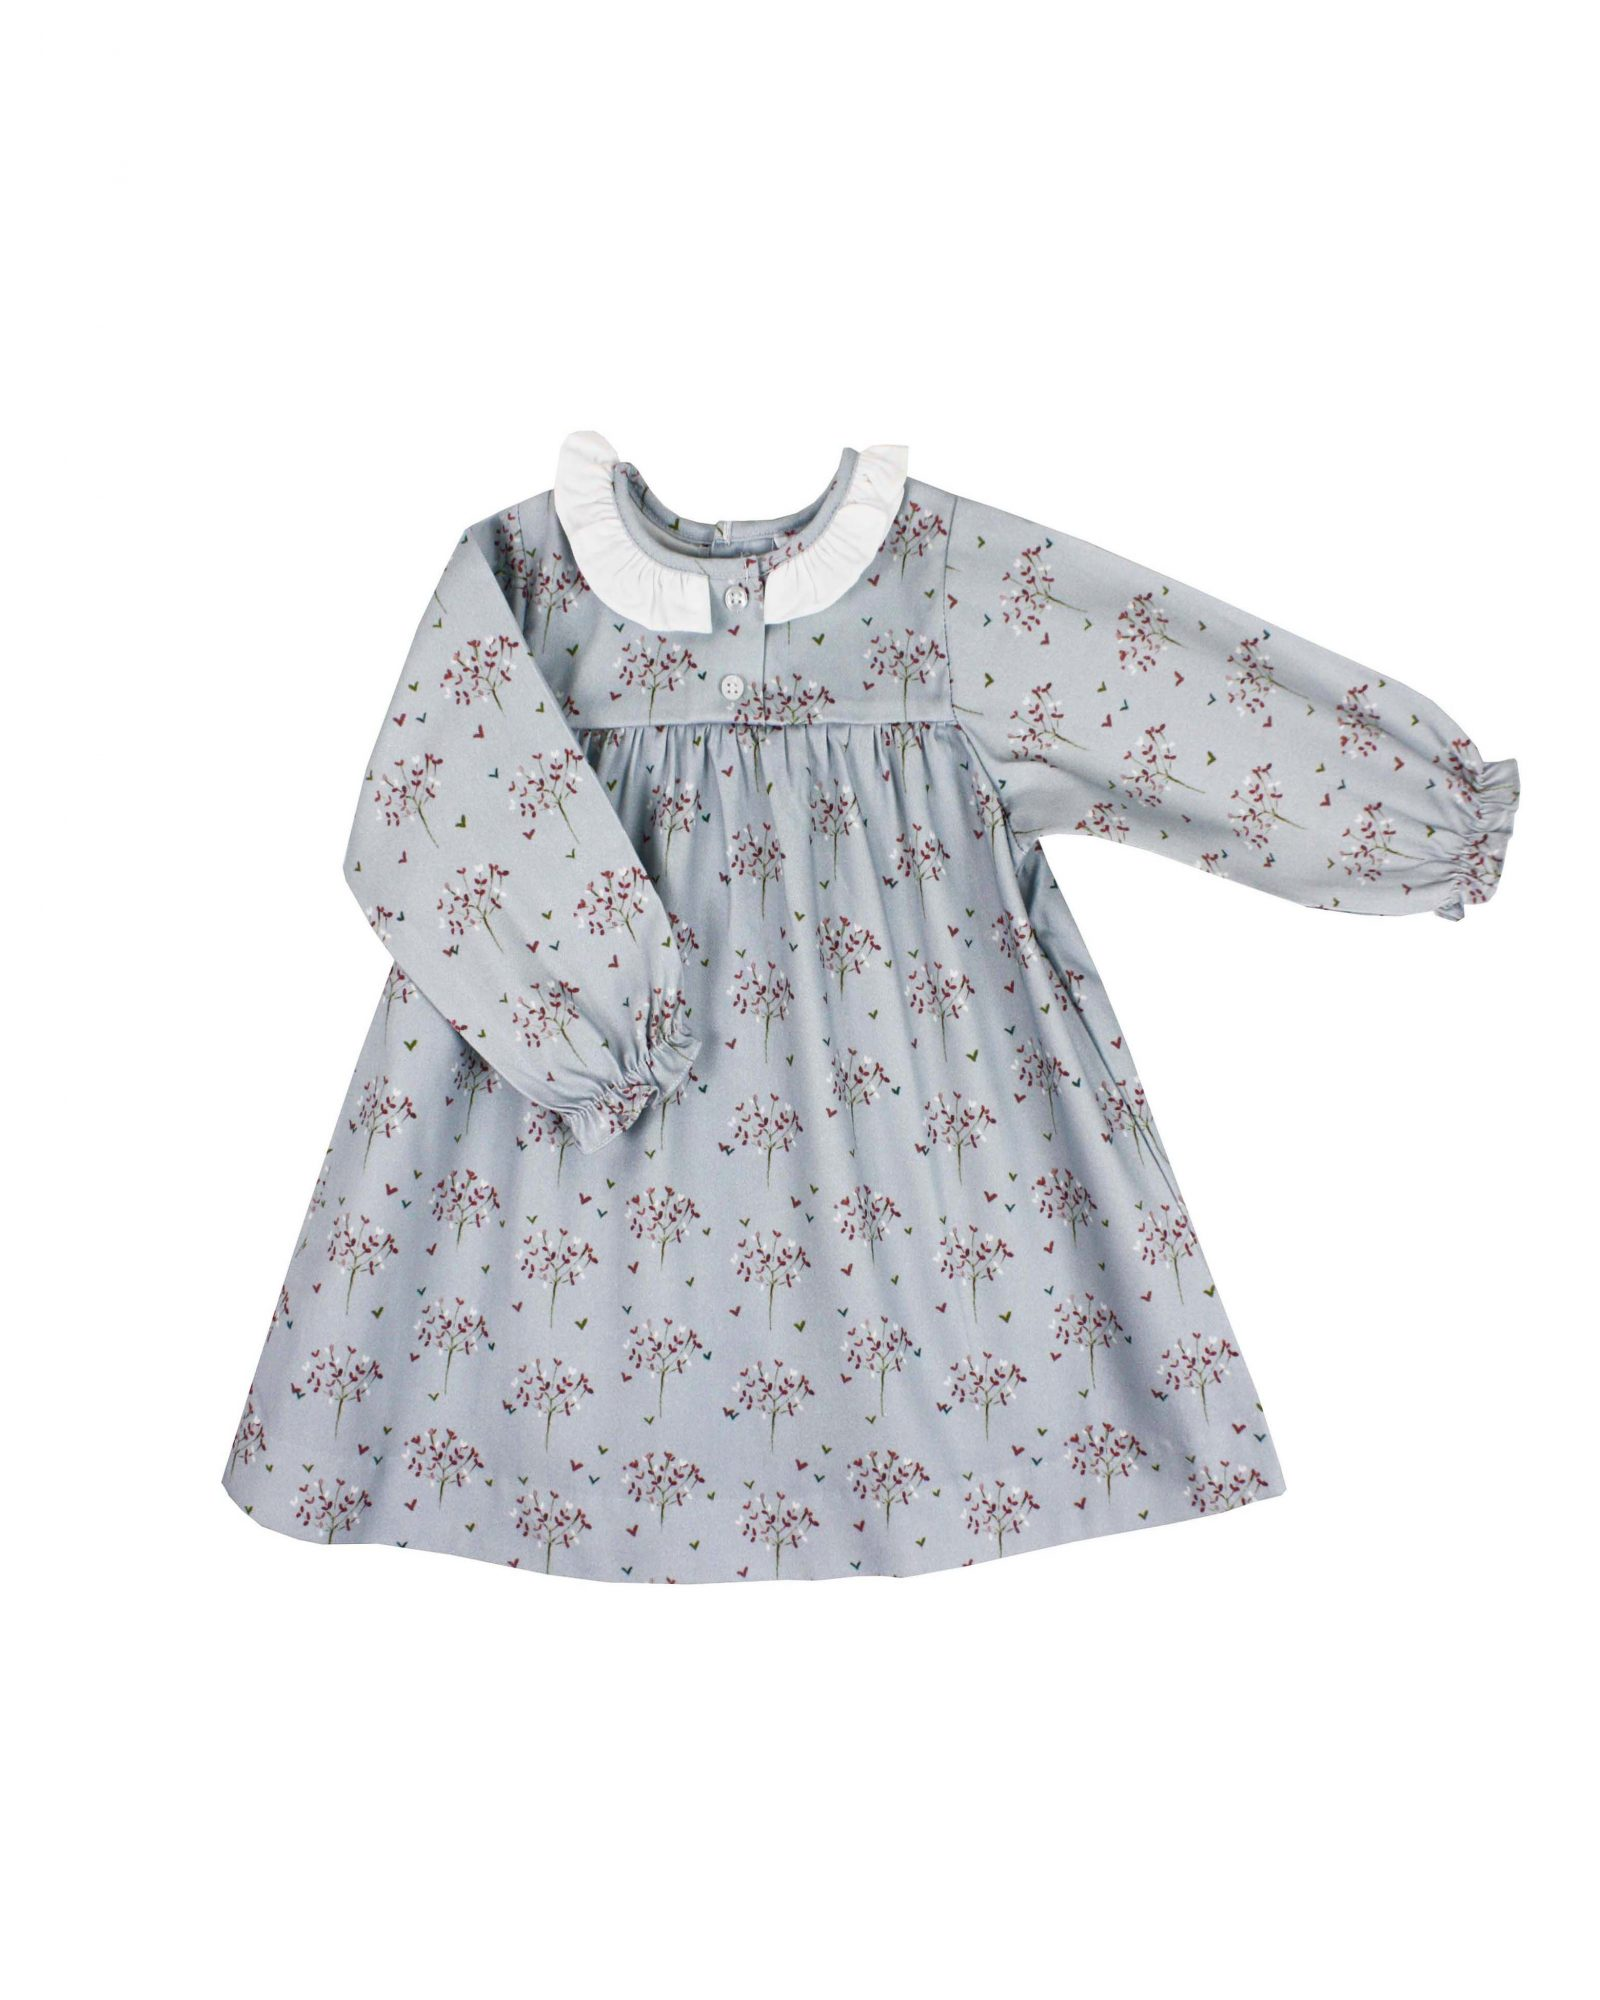 winter flower girl grey long-sleeved dress with floral pattern